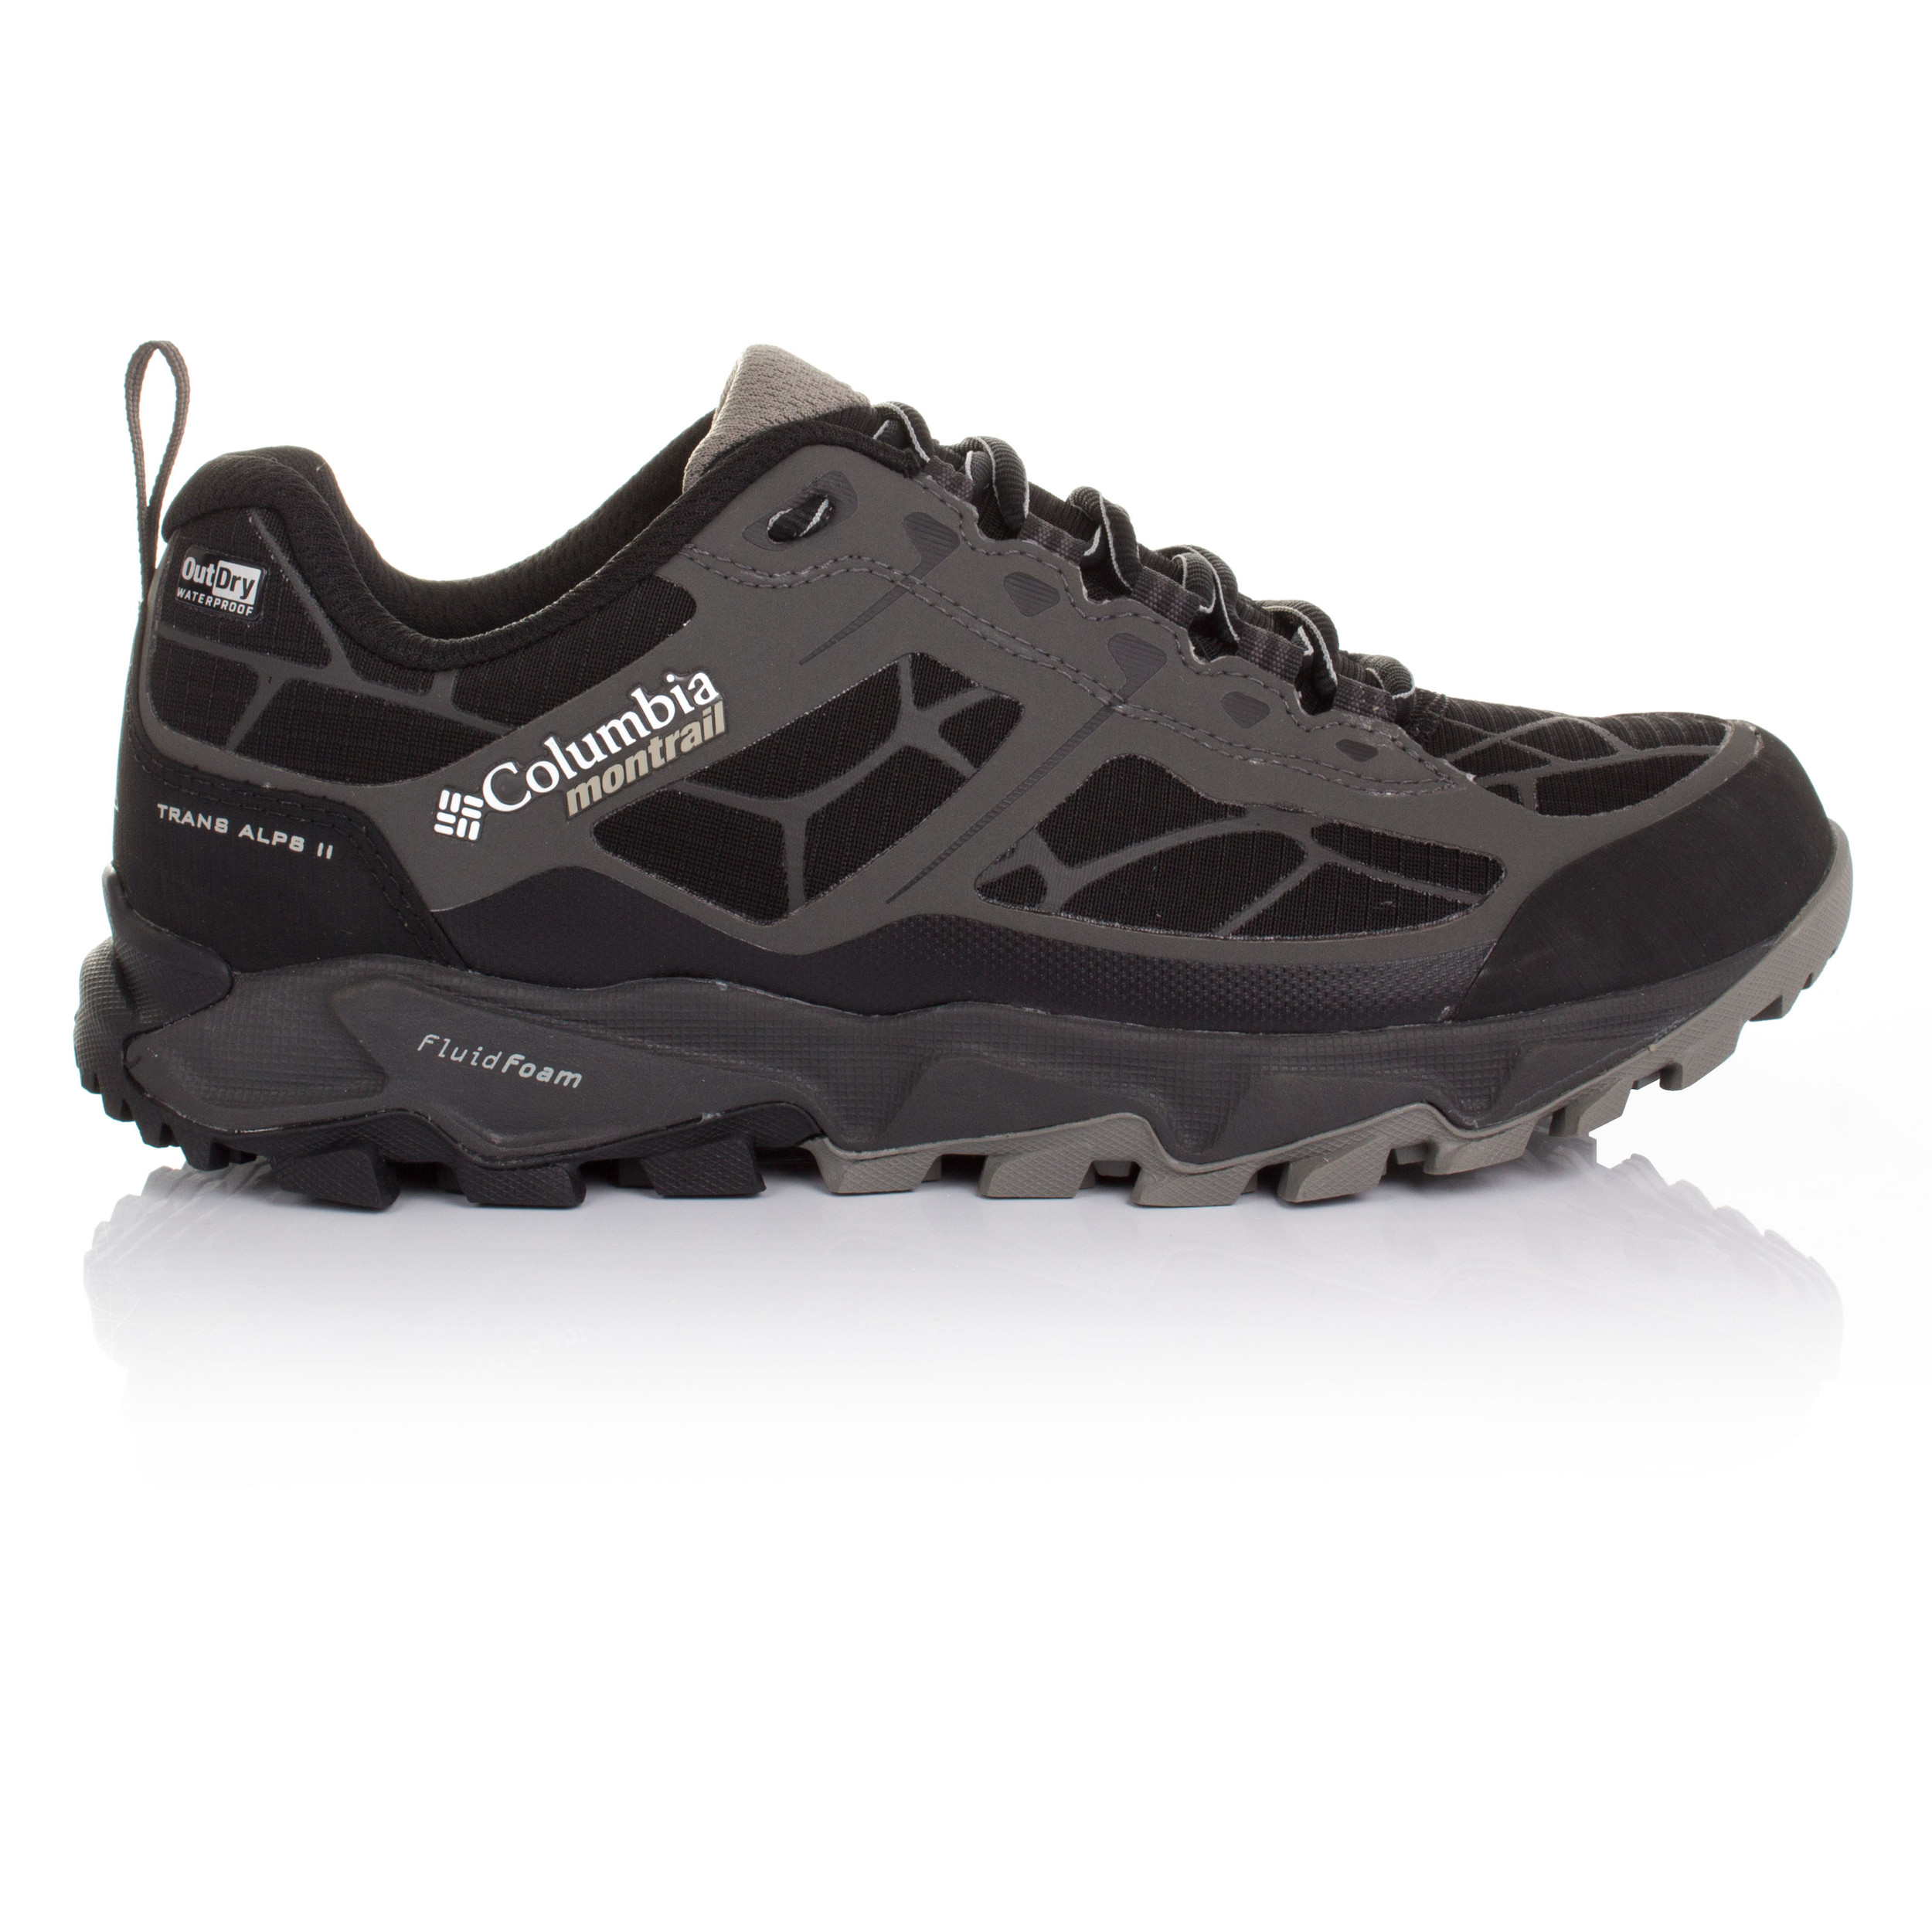 Women s Trail Running Shoes Columbia Trans Alps II Outdry Grey Black